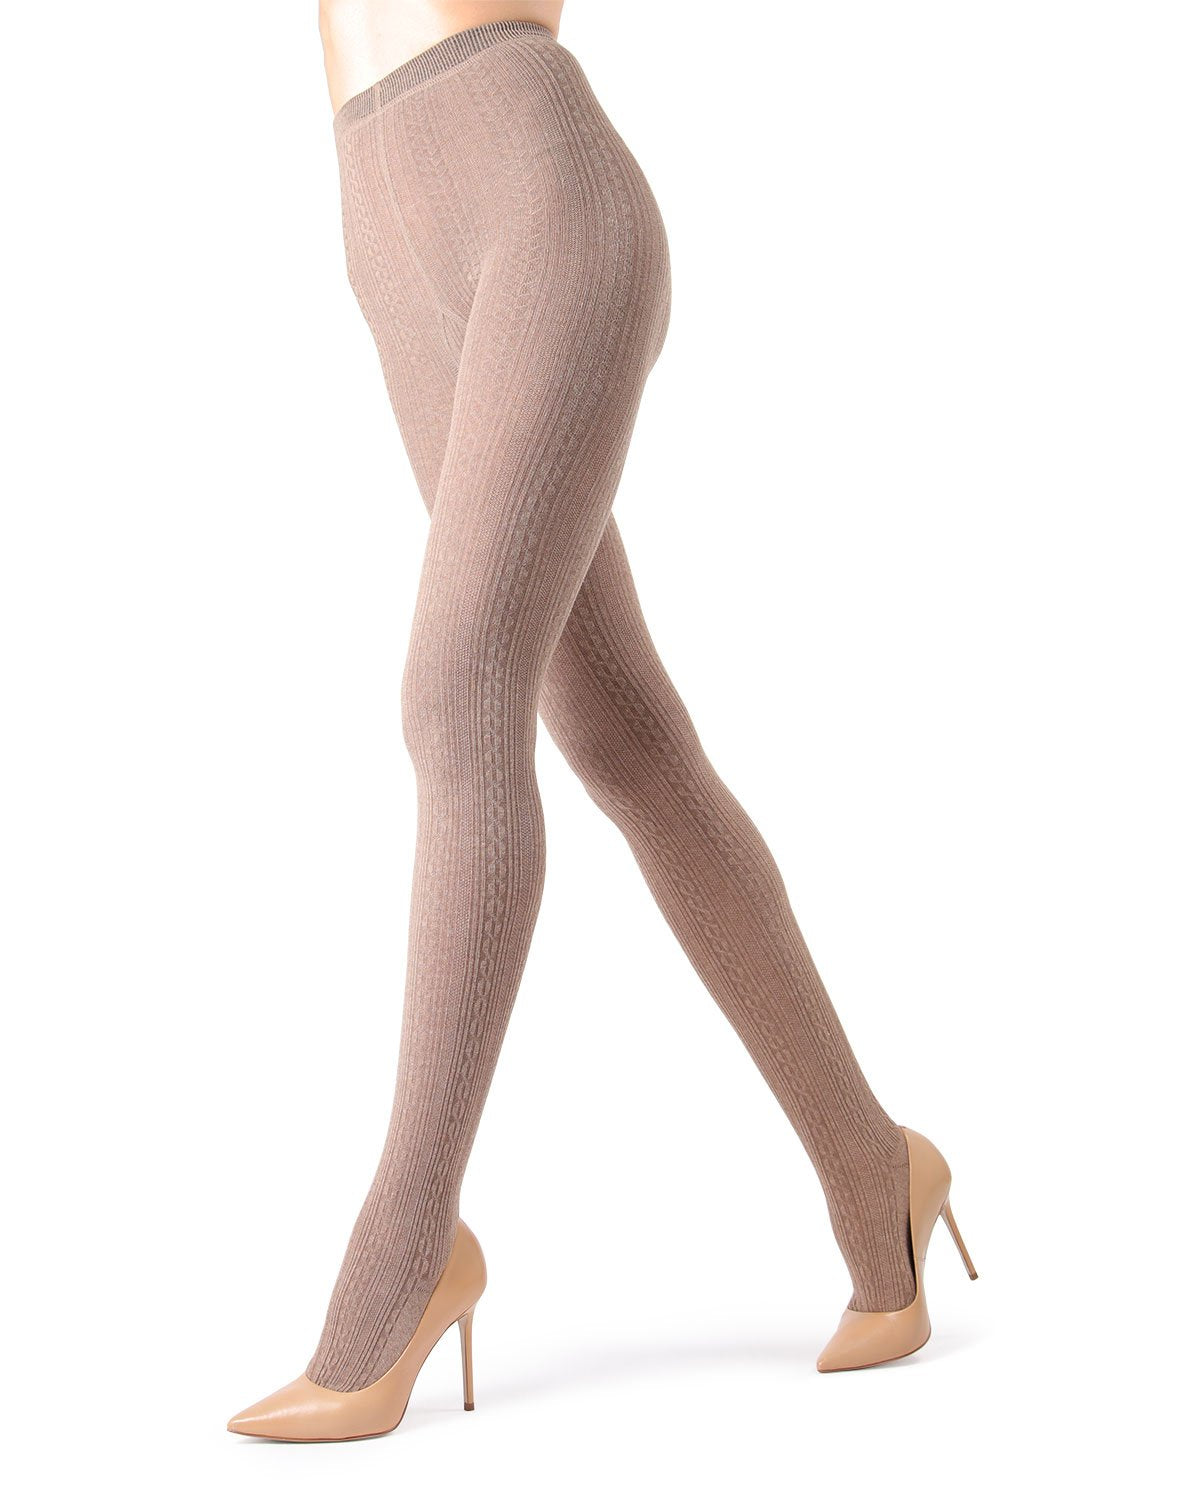 -MO-361 Light Taupe Heather-